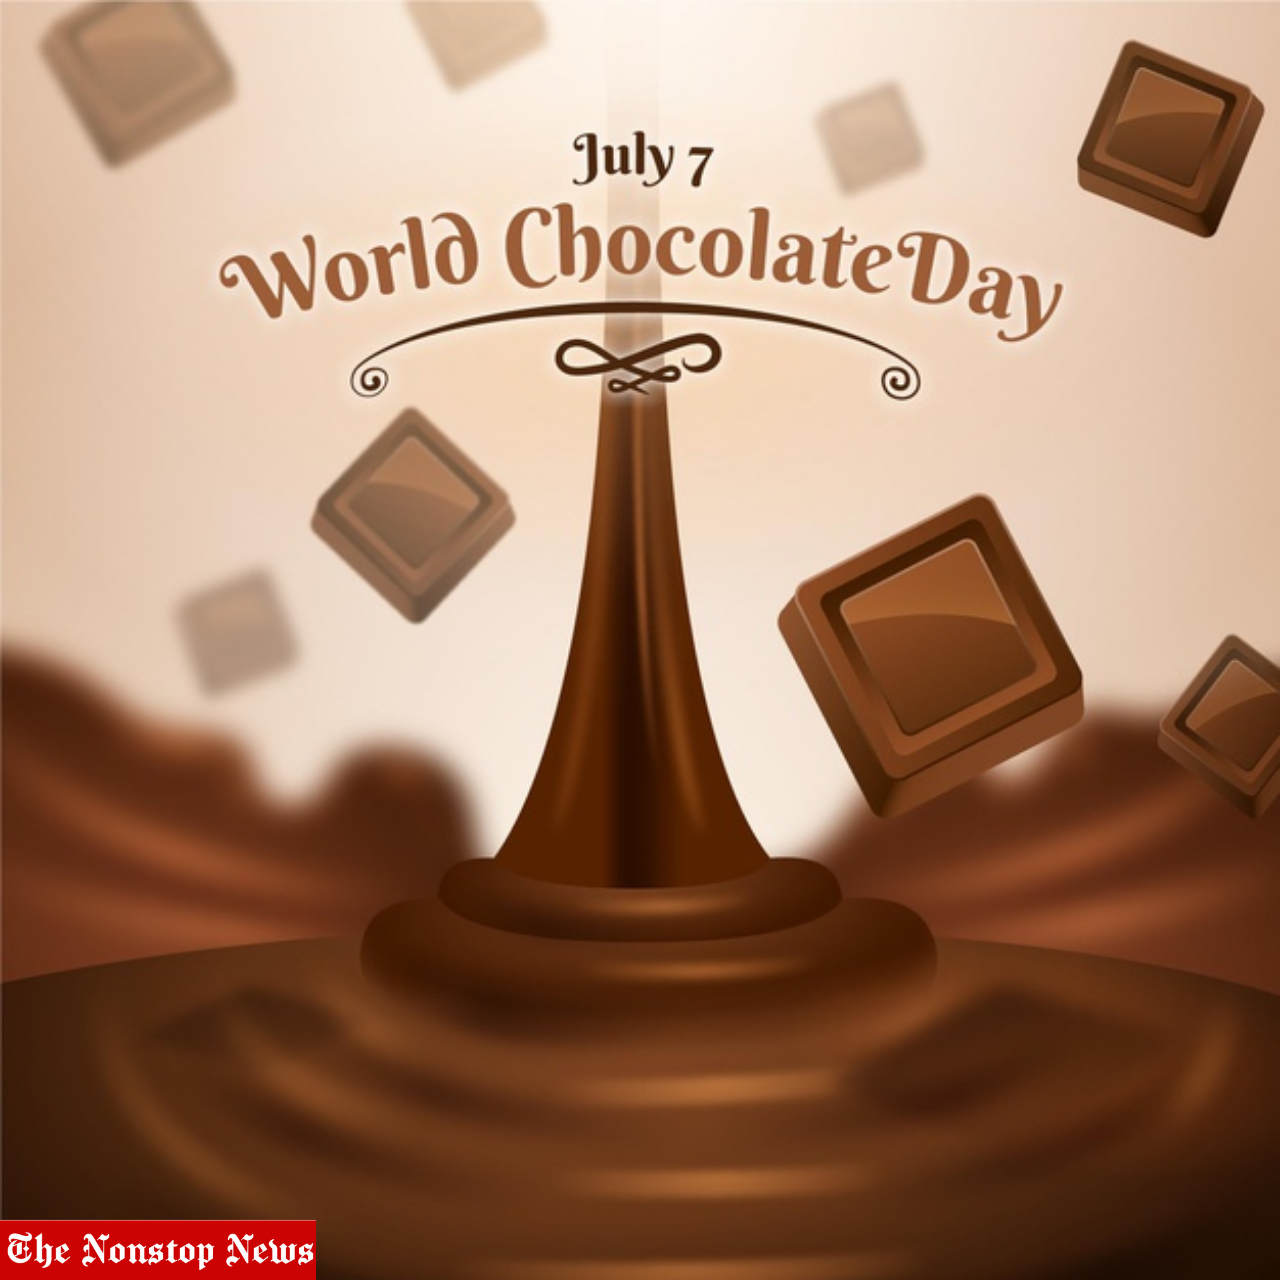 World Chocolate Day 2021: Quotes, Wishes, Images, Greetings, Meme, Poster, Facebook, and Twitter Posts to celebrate chocolate Day